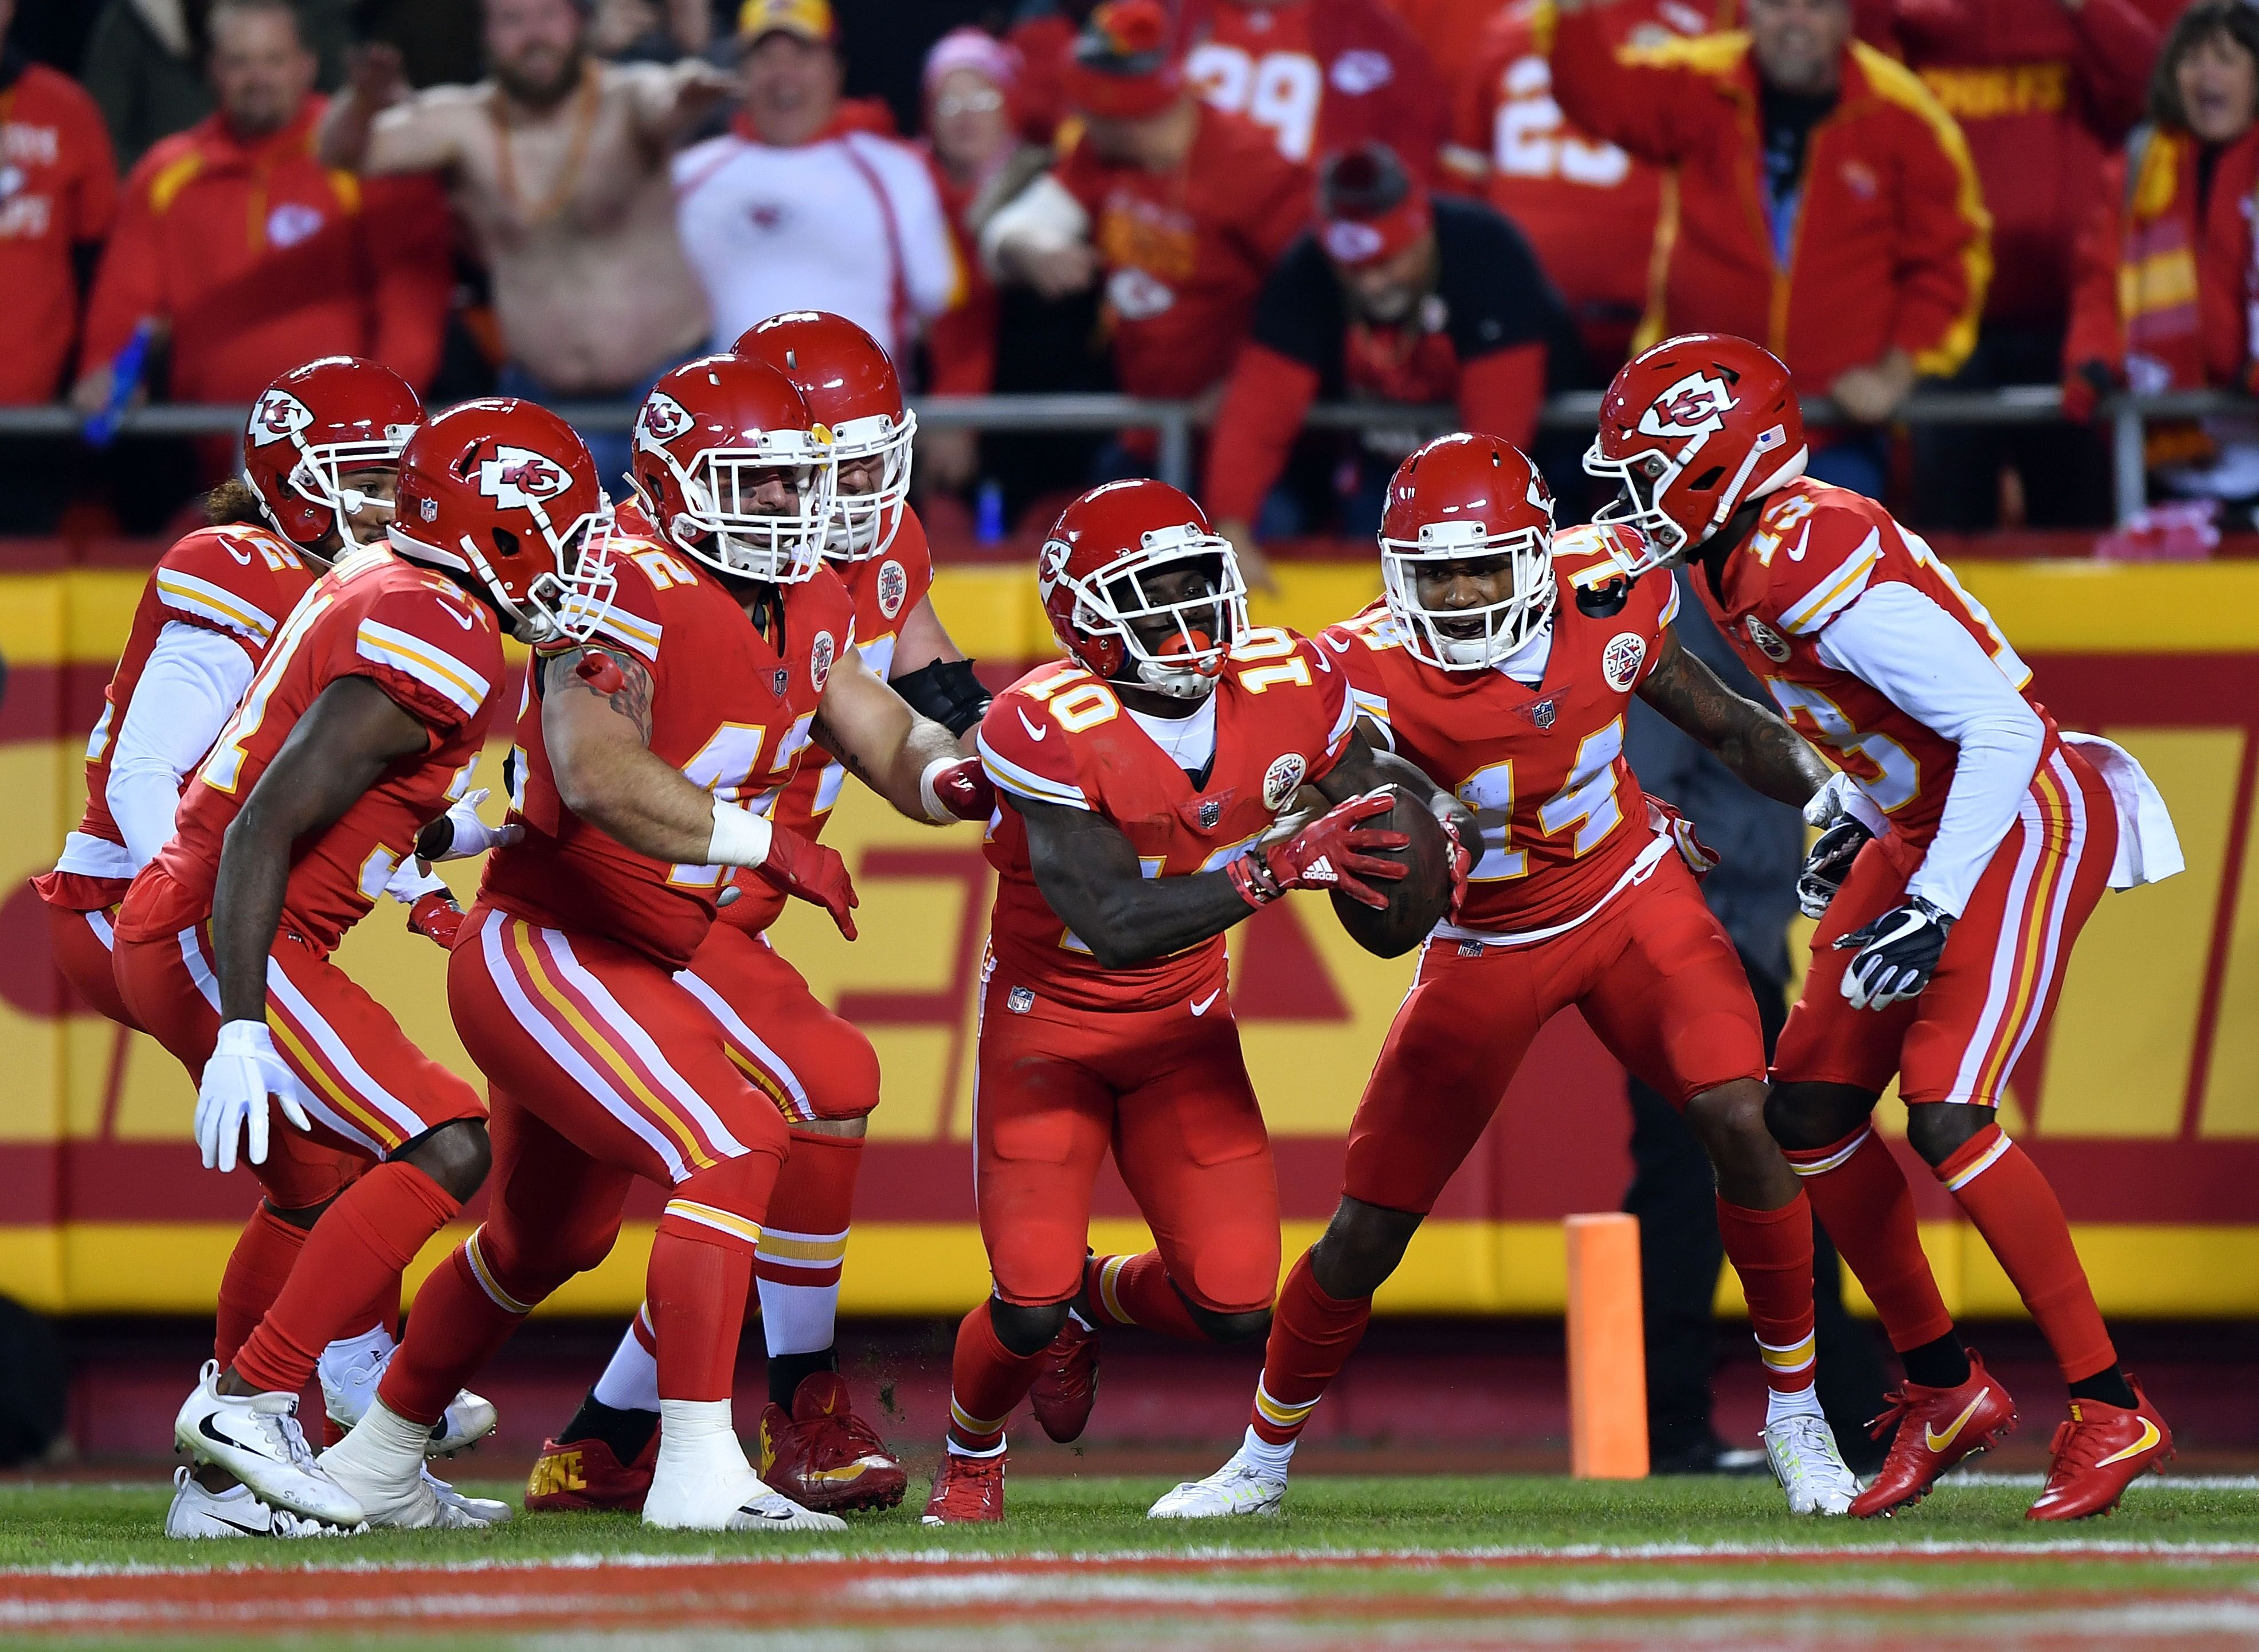 b656ccc4c Kansas City Chiefs will be able to wear more red-on-red uniforms in 2018